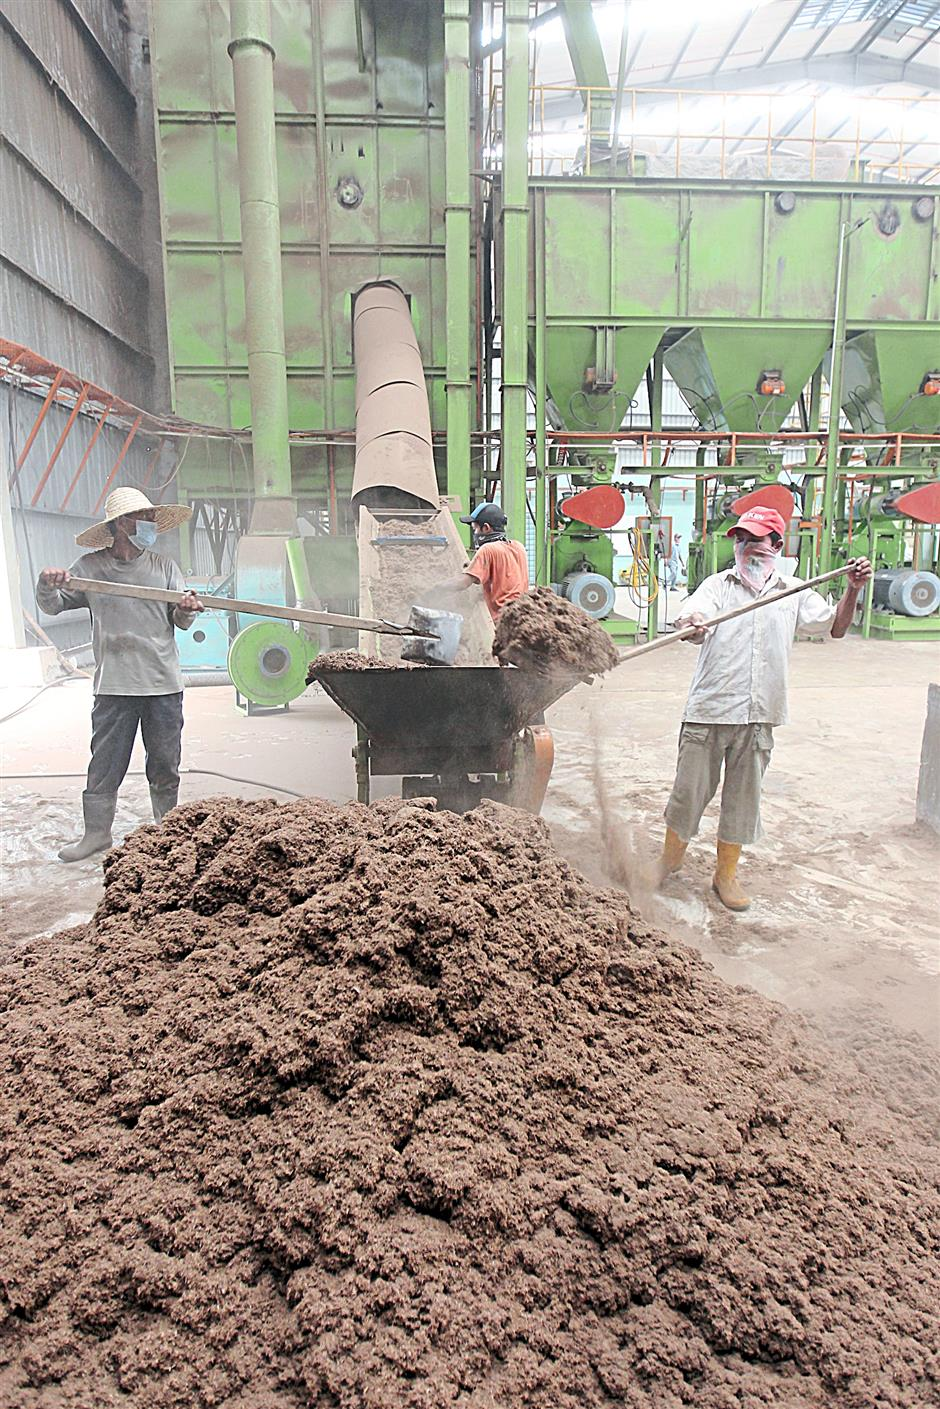 Finely shredded oil palm biomass being fed into machinery for the production of pellets.